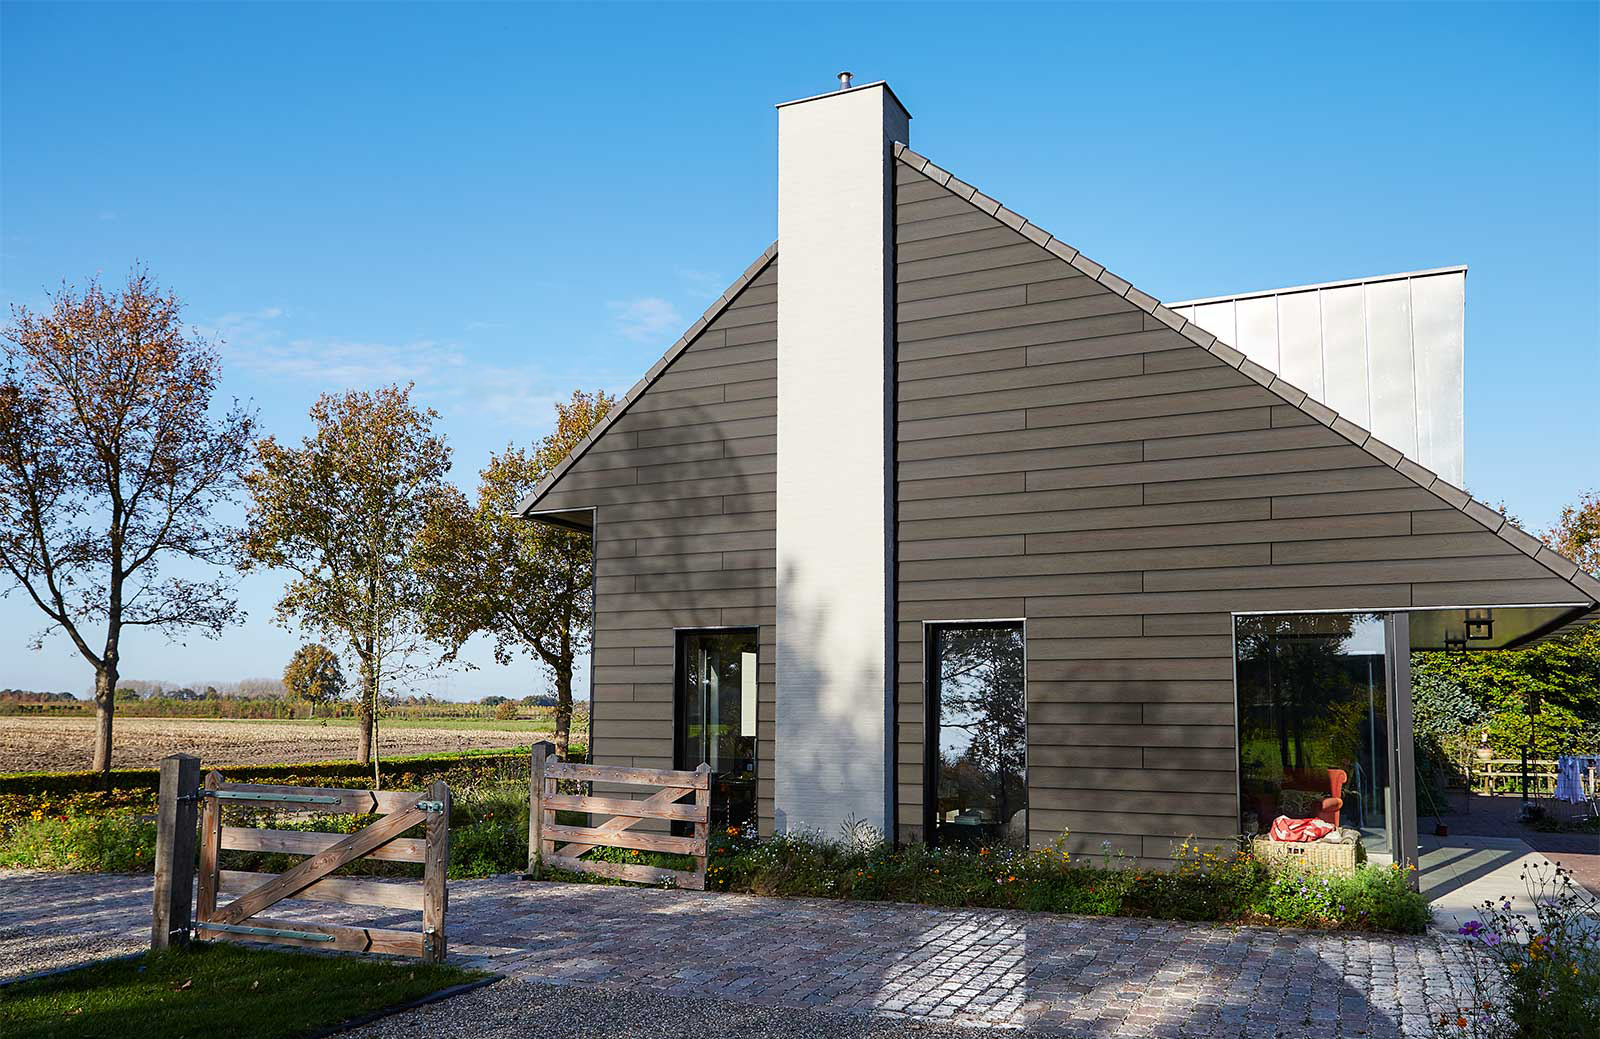 Trespa Introduces Pura NFC Alternative Siding JLC Online